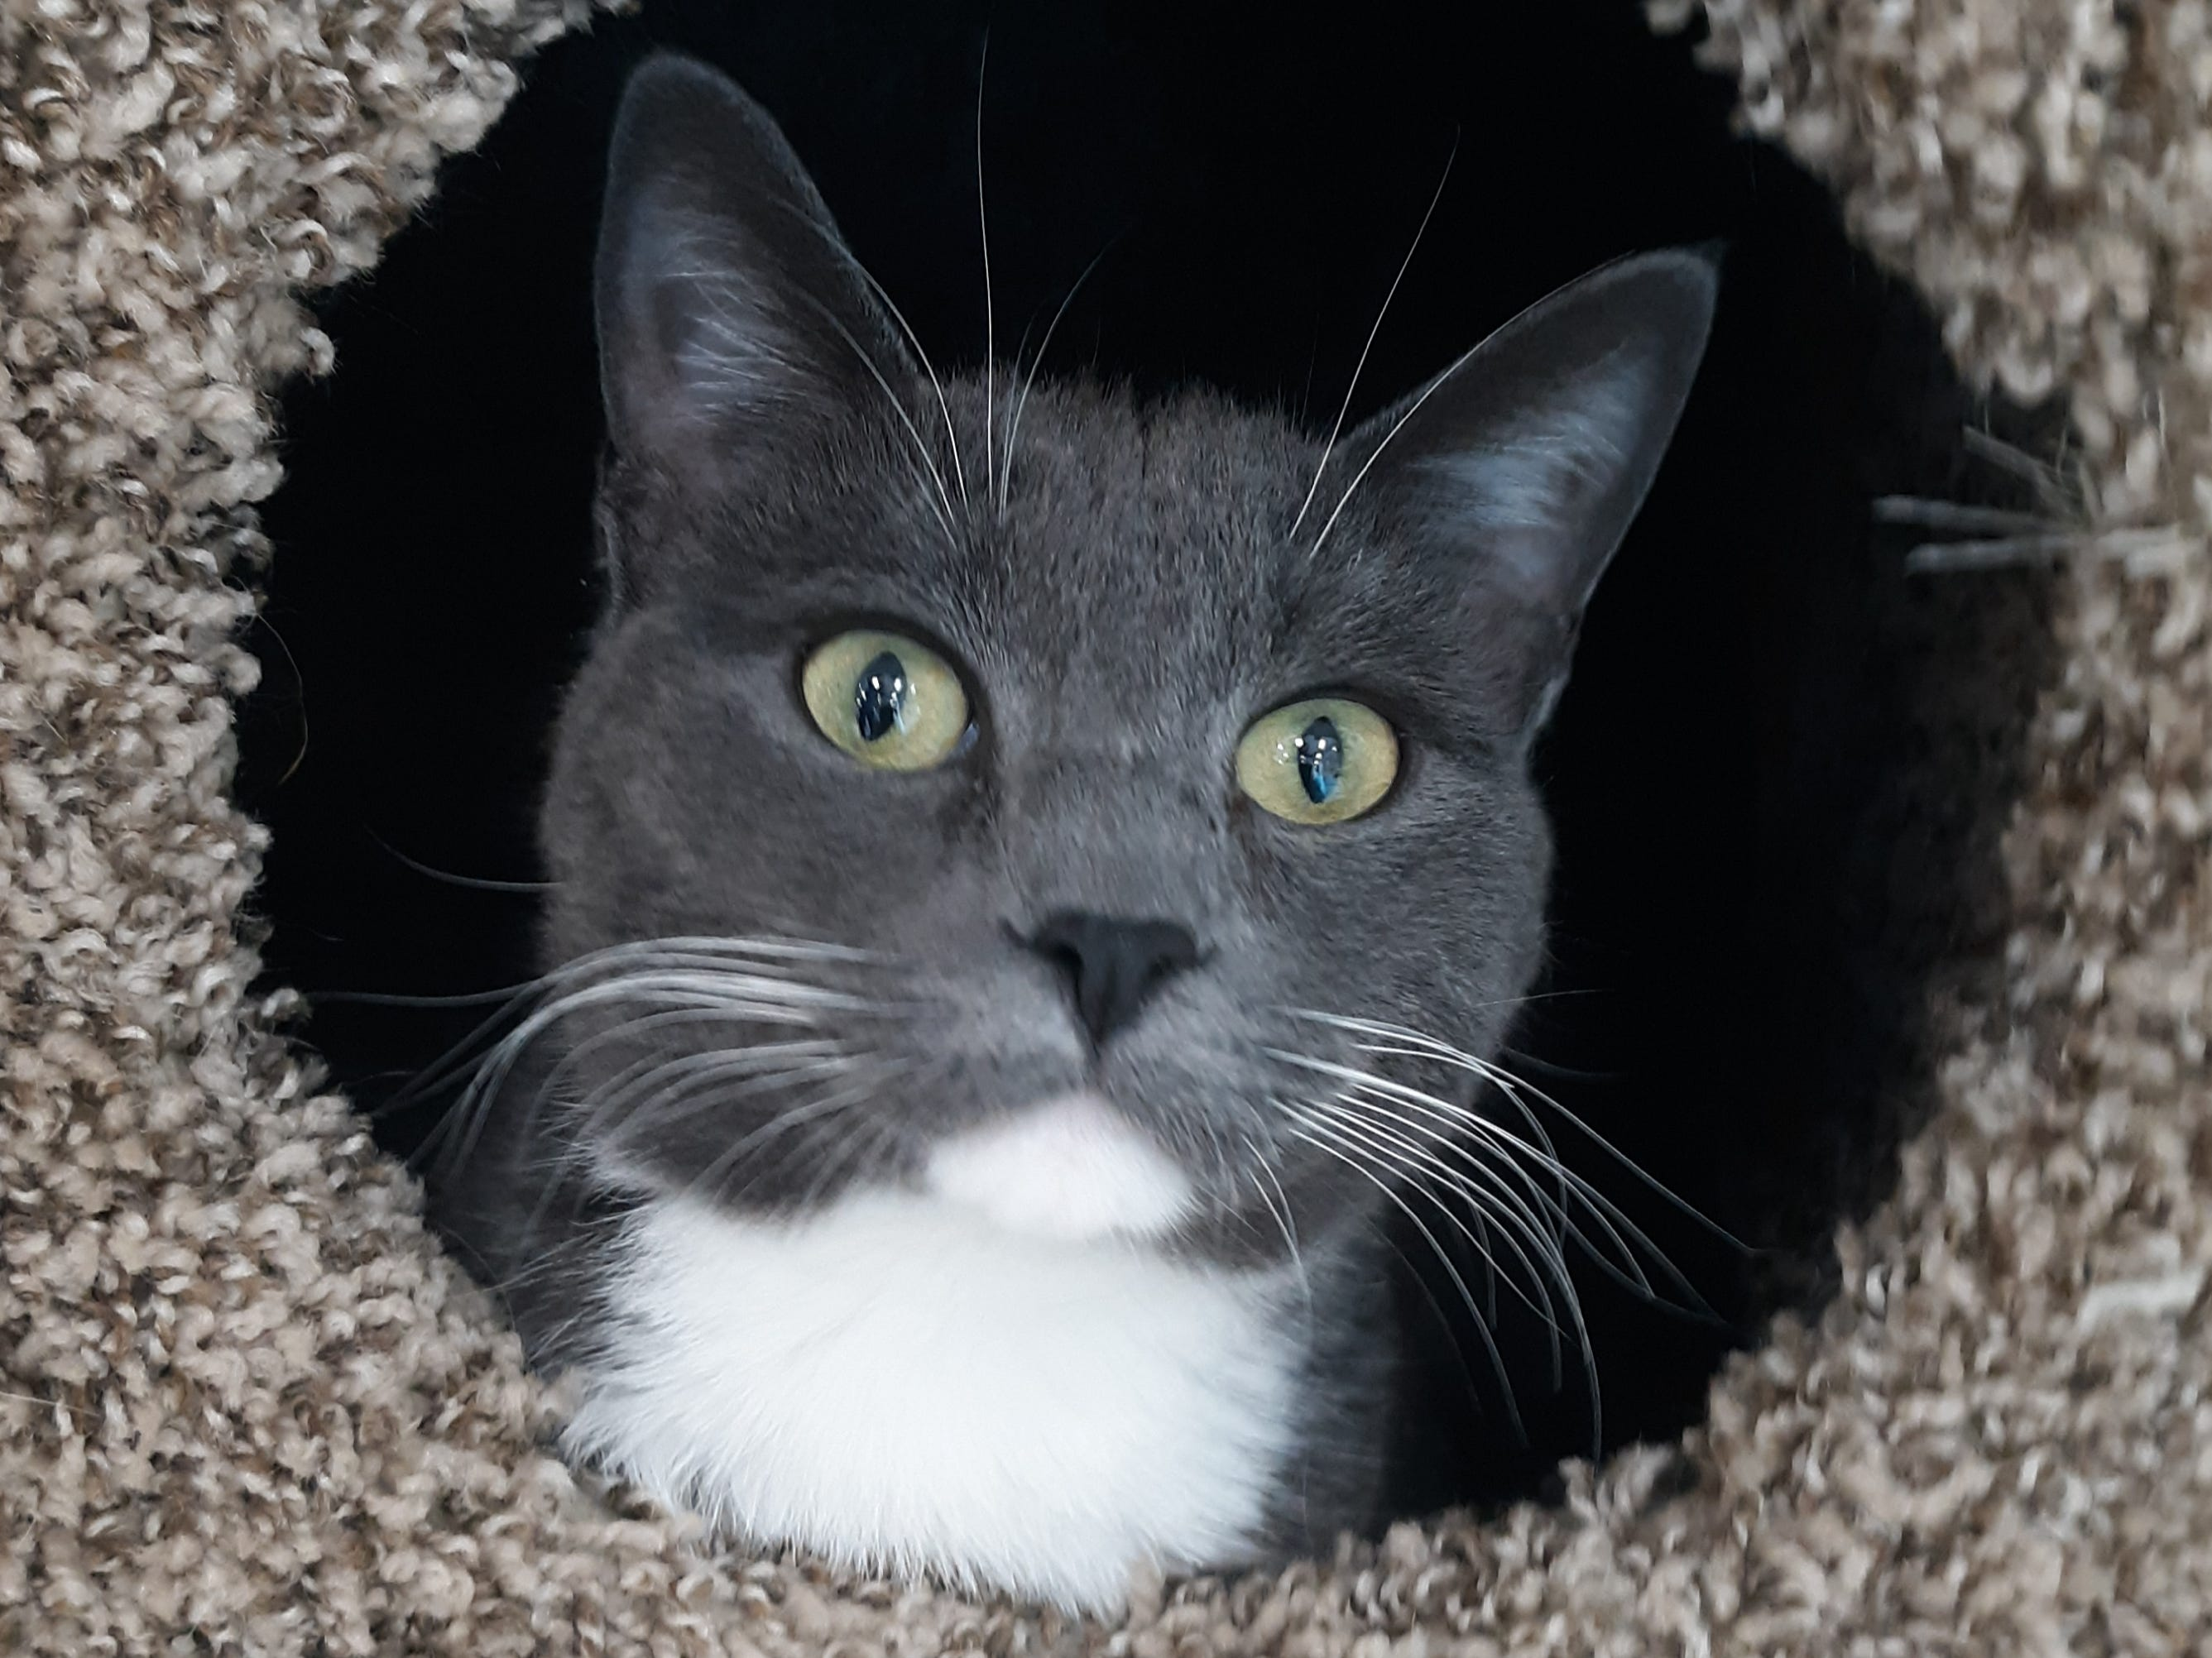 Grady is a male, 1-year-old, gray and white, domestic-shorthair cat. He's a big fellow. He's very sweet and playful. All animal adoptions include spaying or neutering and vaccinations. Apply with Another Chance Animal Welfare League at www.acawl.org. Call 515-0537.